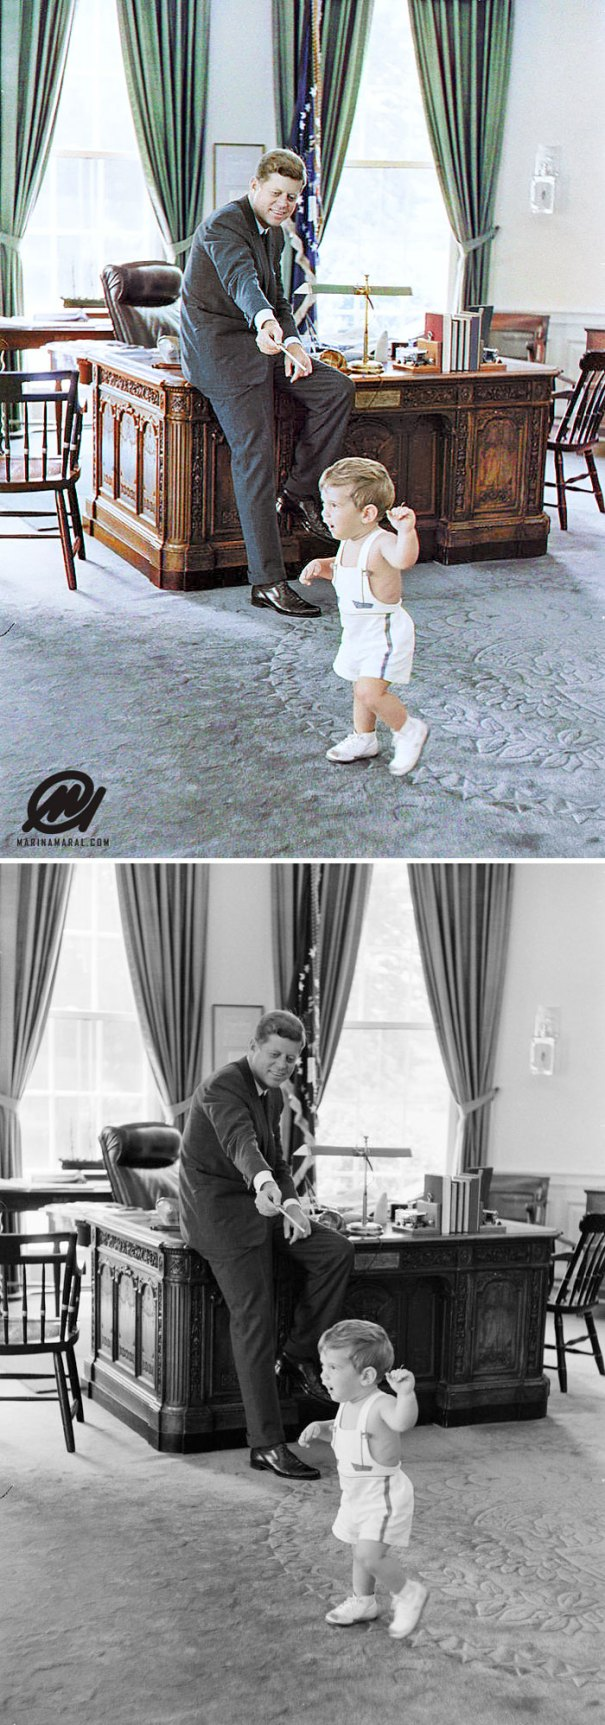 5b6d3b805894b-colorized-historic-photos-marina-amaral-34-5b6acfc0f1b0c__700 This Artist Colorizes Old Black & White Photos, And They Will Change The Way People Imagine History Photography Random